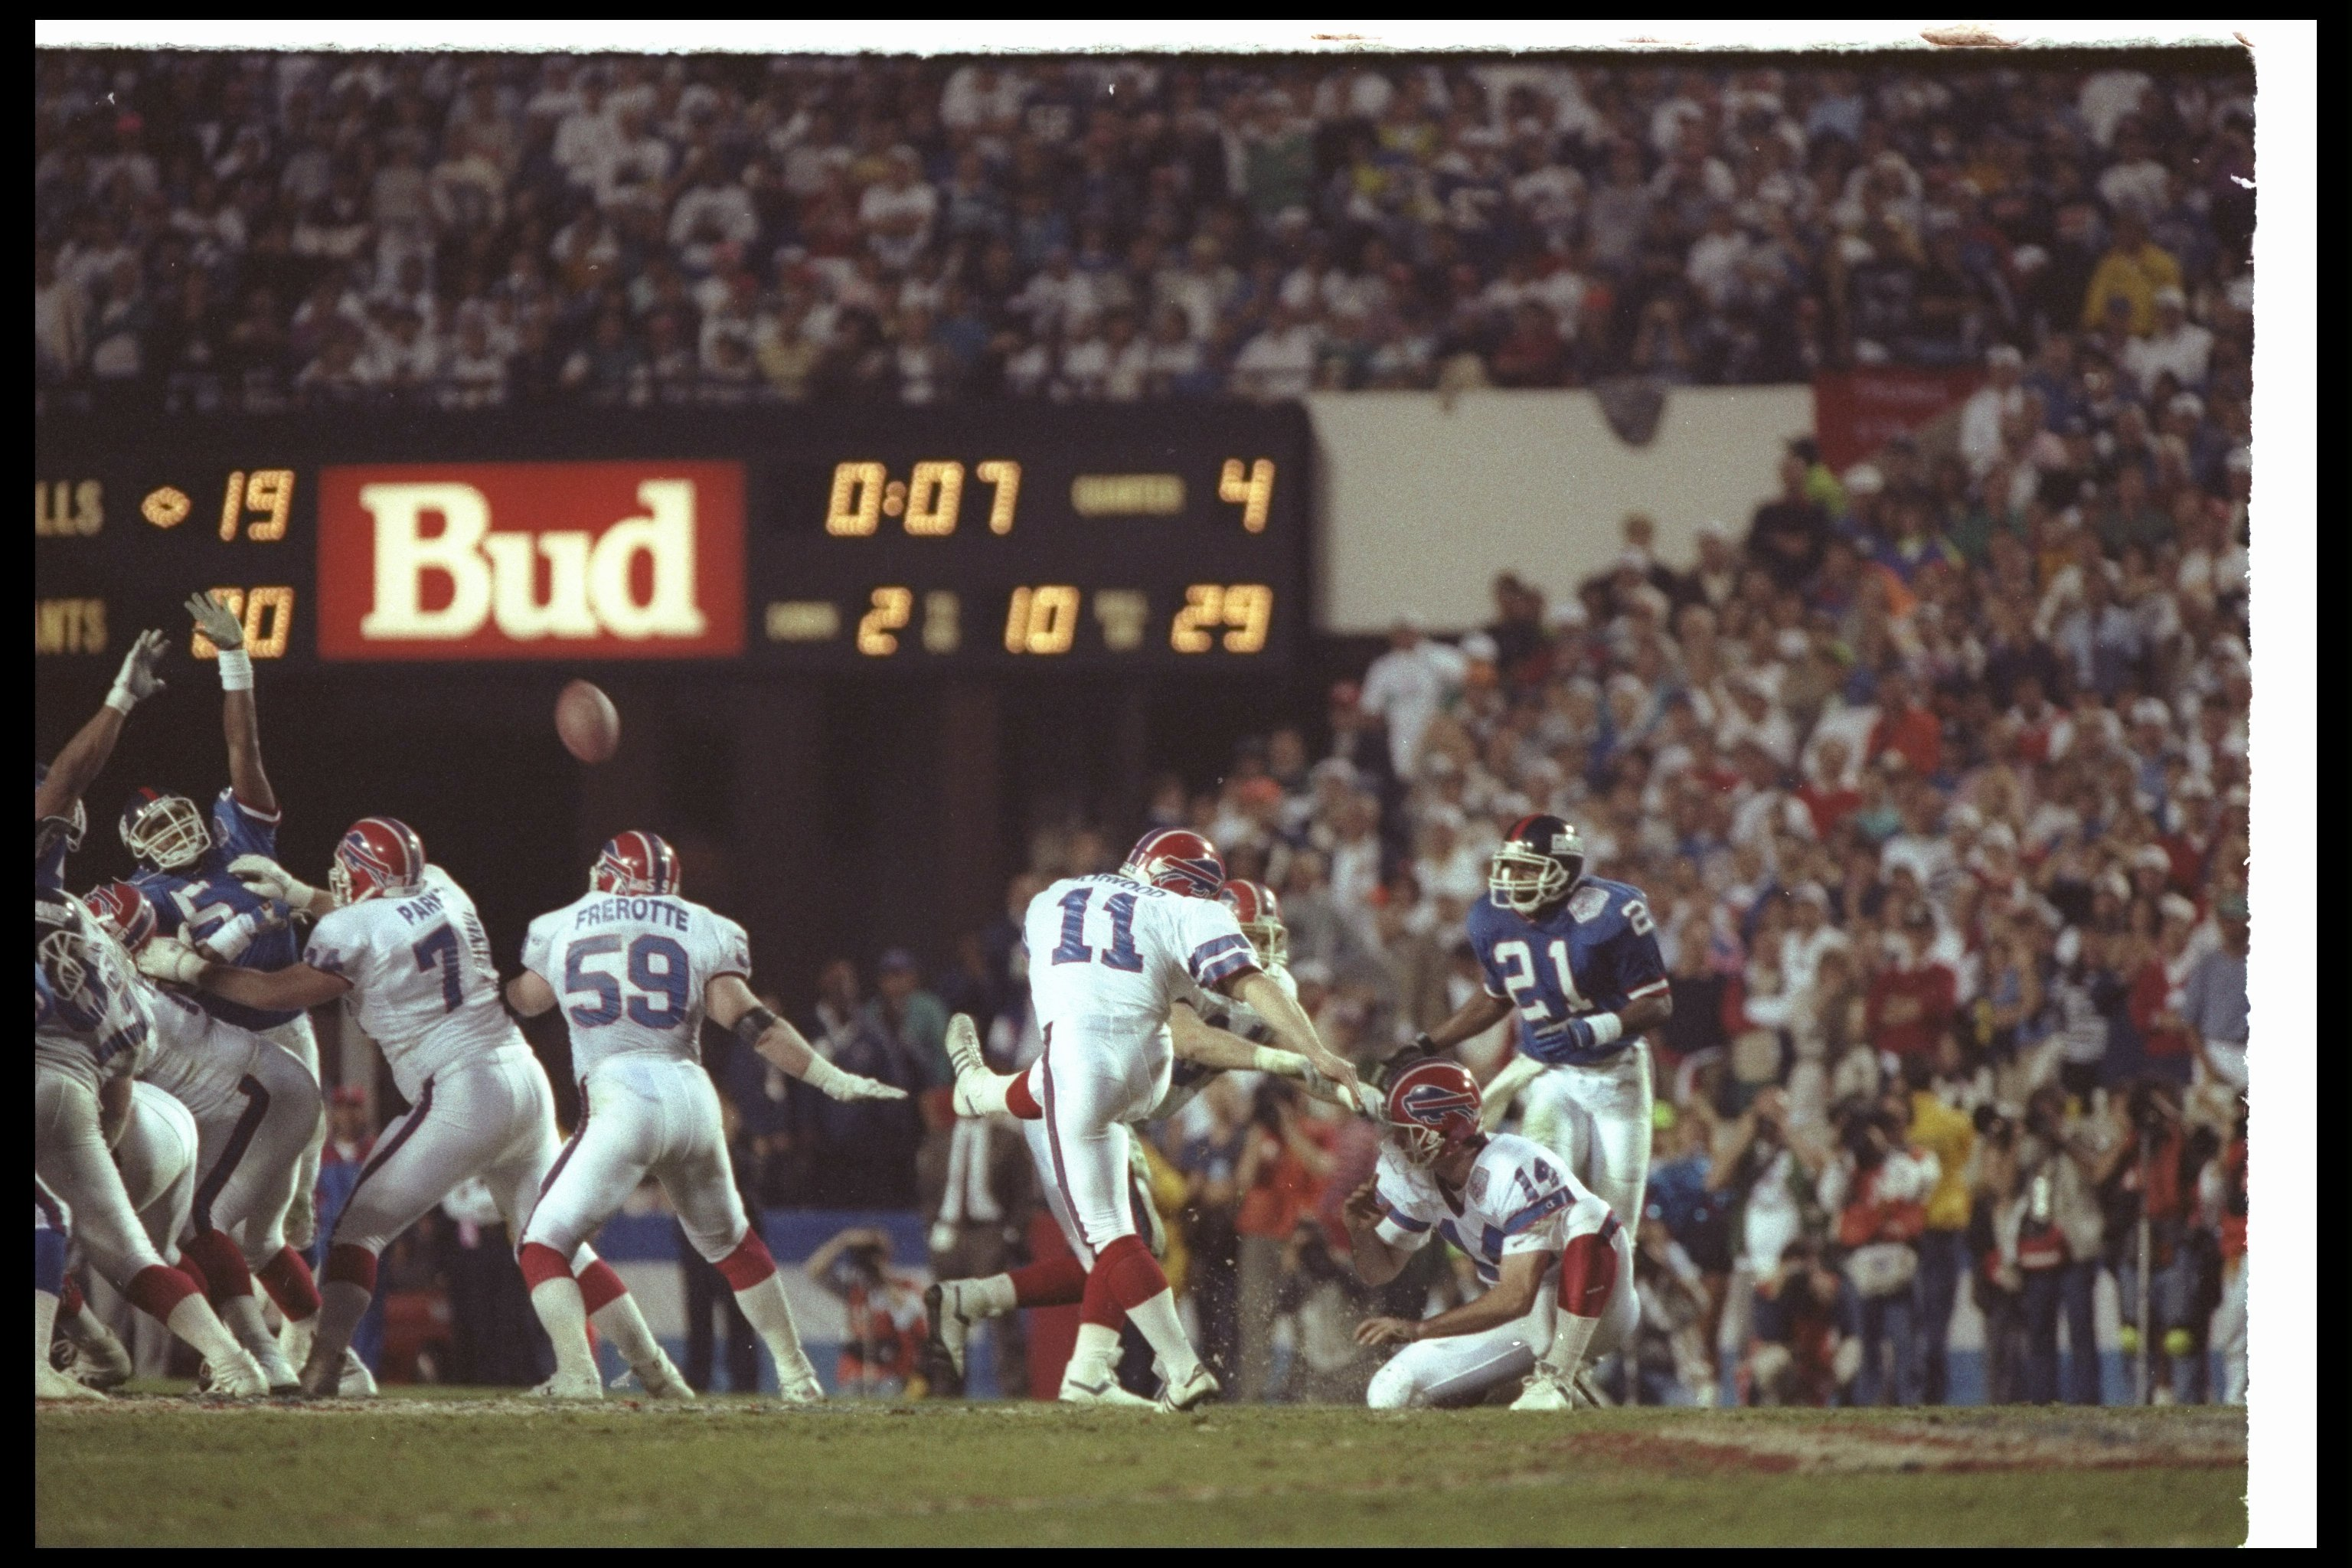 12 Jan 1991: Kicker Scott Norwood #11 of the Buffalo Bills misses a 47-yard field goal wide right at the end of regulation during Super Bowl XXV against the New York Giants at Tampa Stadium in Tampa, Florida. The Giants won the game, 20-19.